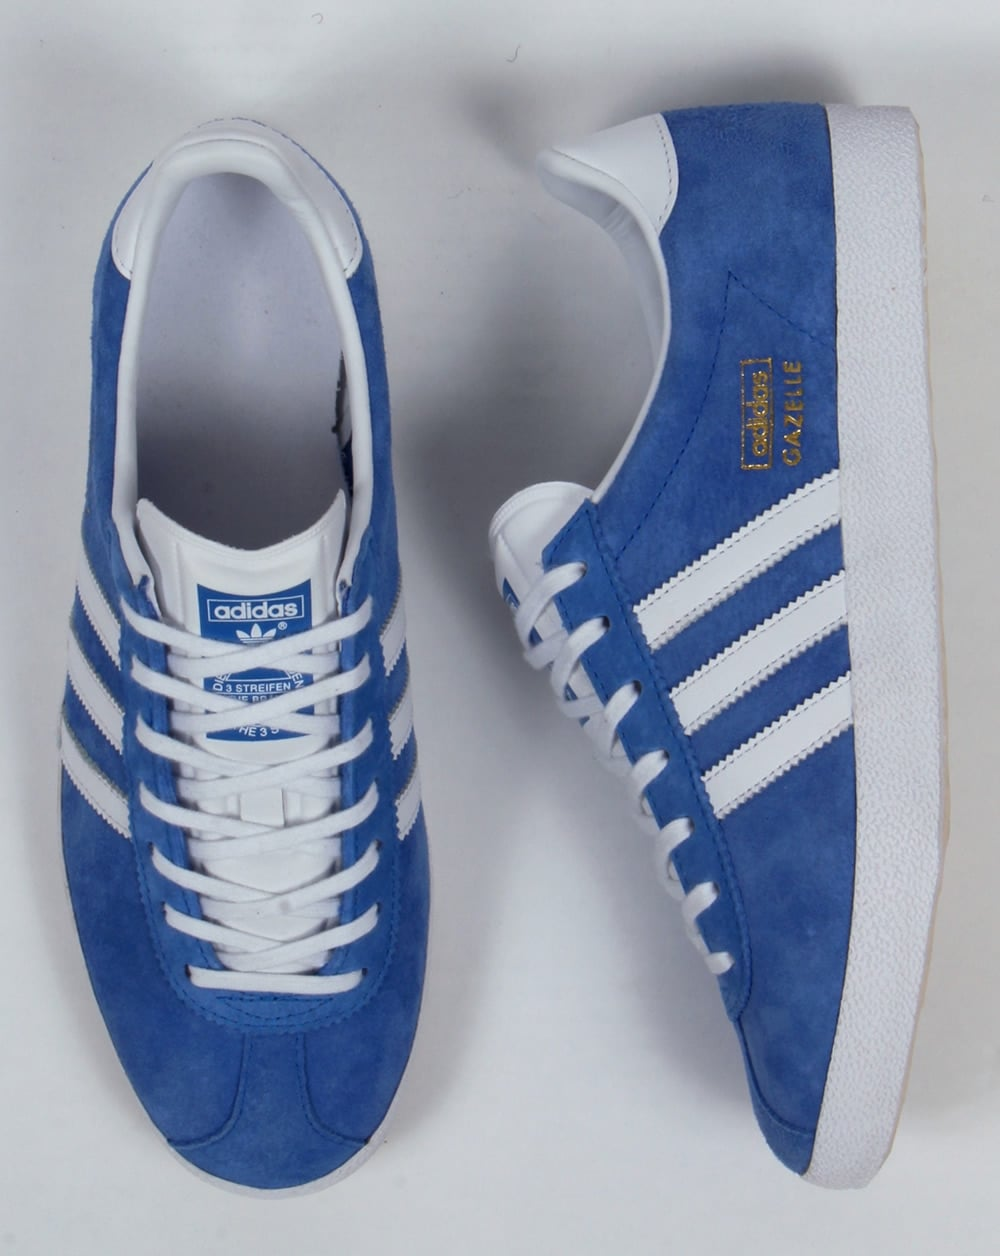 adidas originals gazelle og blue